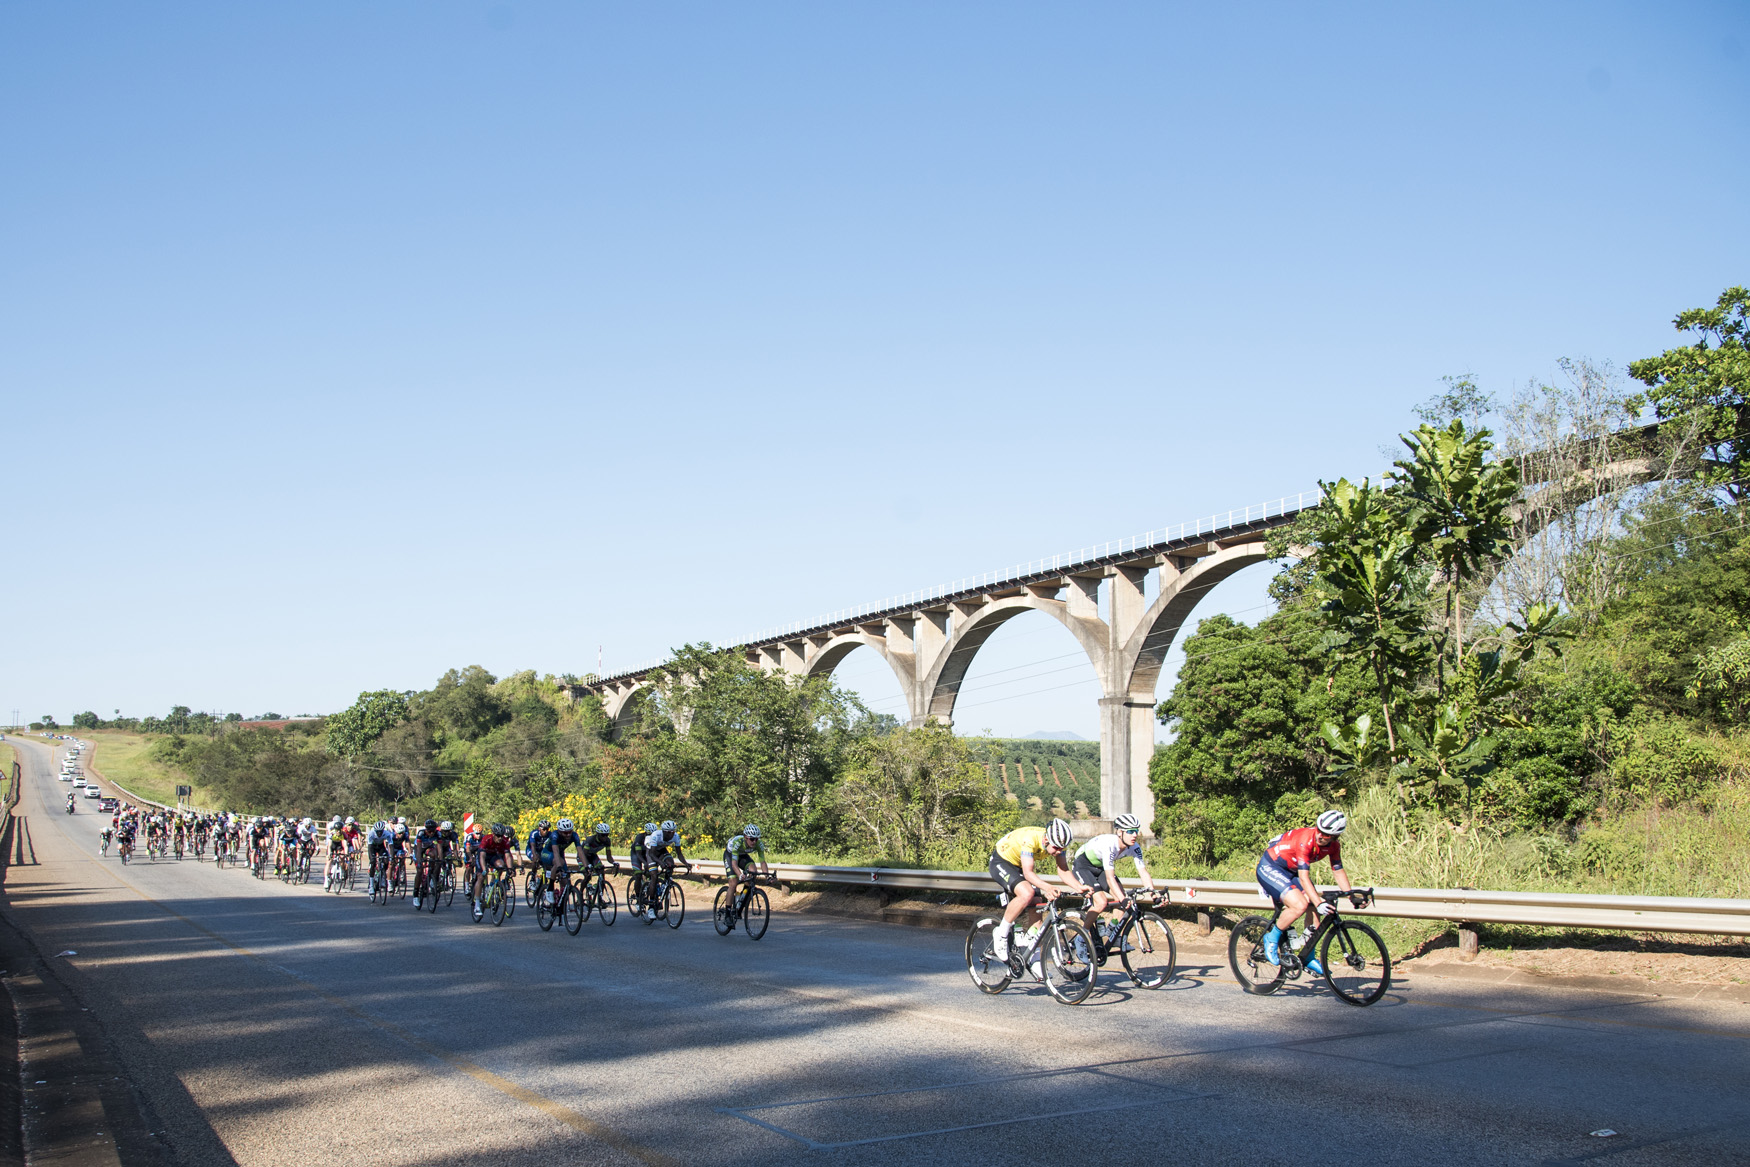 The picturesque departure from Tzaneen to Old Coach Road, Mt. Agatha, on Stage 3 of the 2019 Tour de Limpopo (UCI 2.2) from 14-18 May © Tour de Limpopo/Andrew Mc Fadden